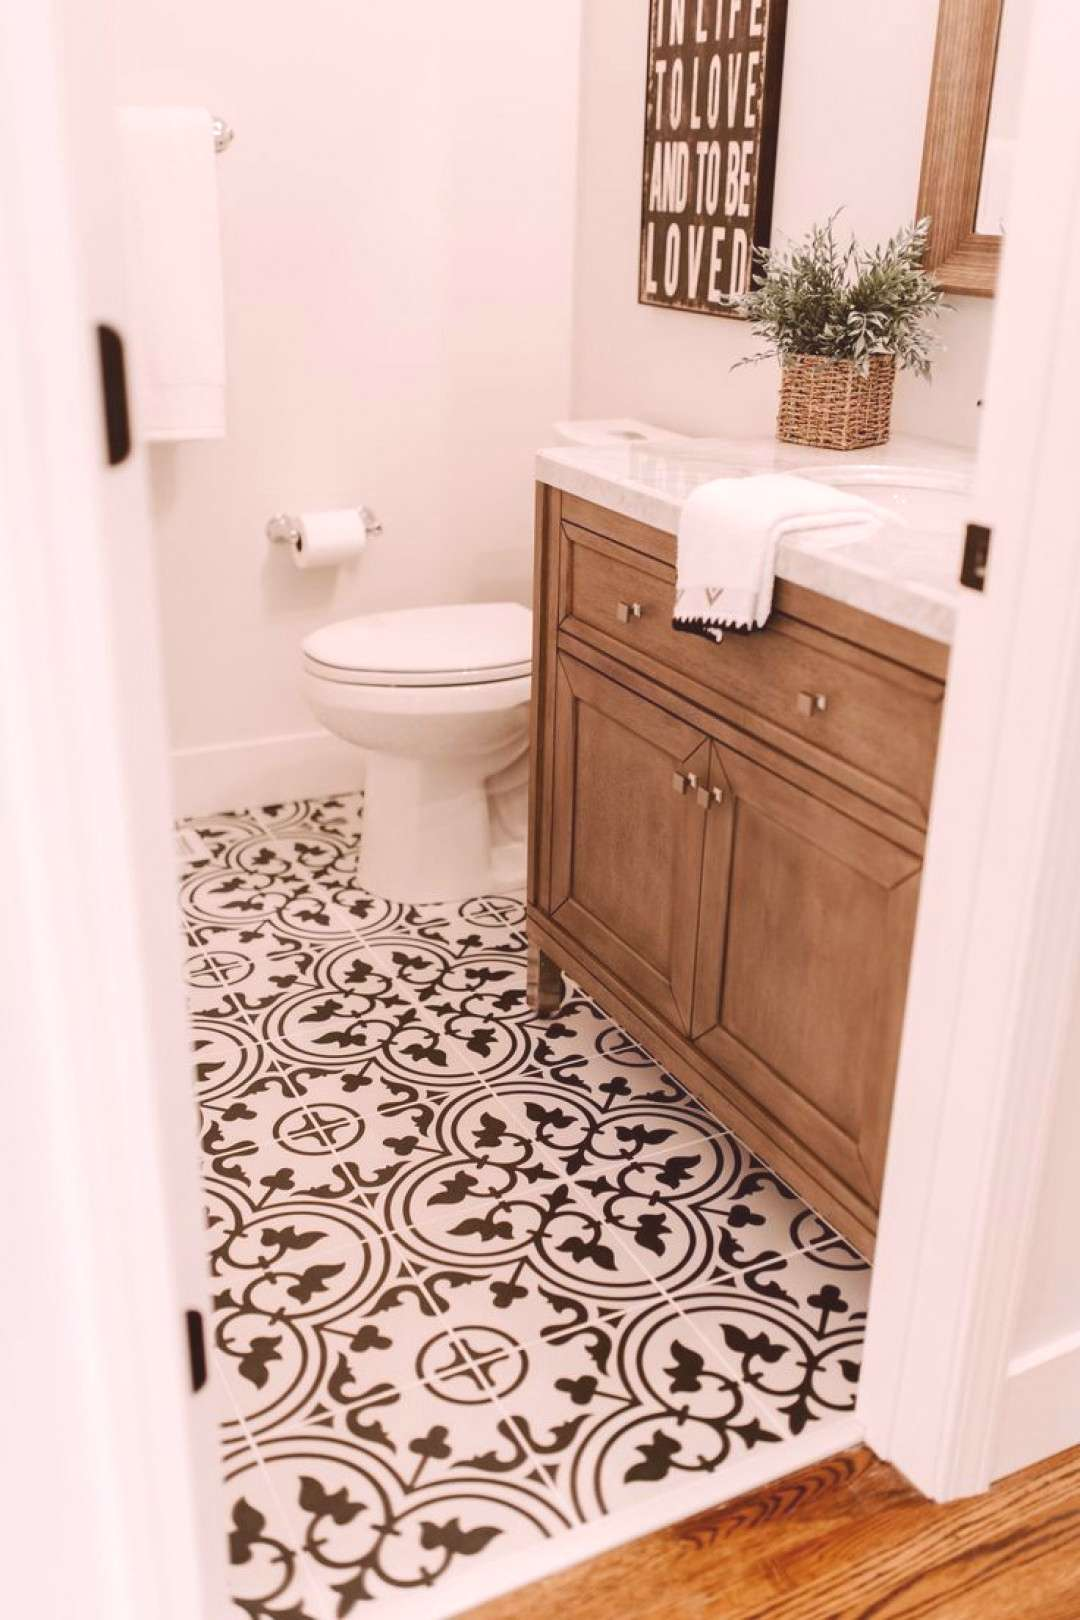 Black and white tile with a walnut vanity are perfection in this modern farmhouse style renovation